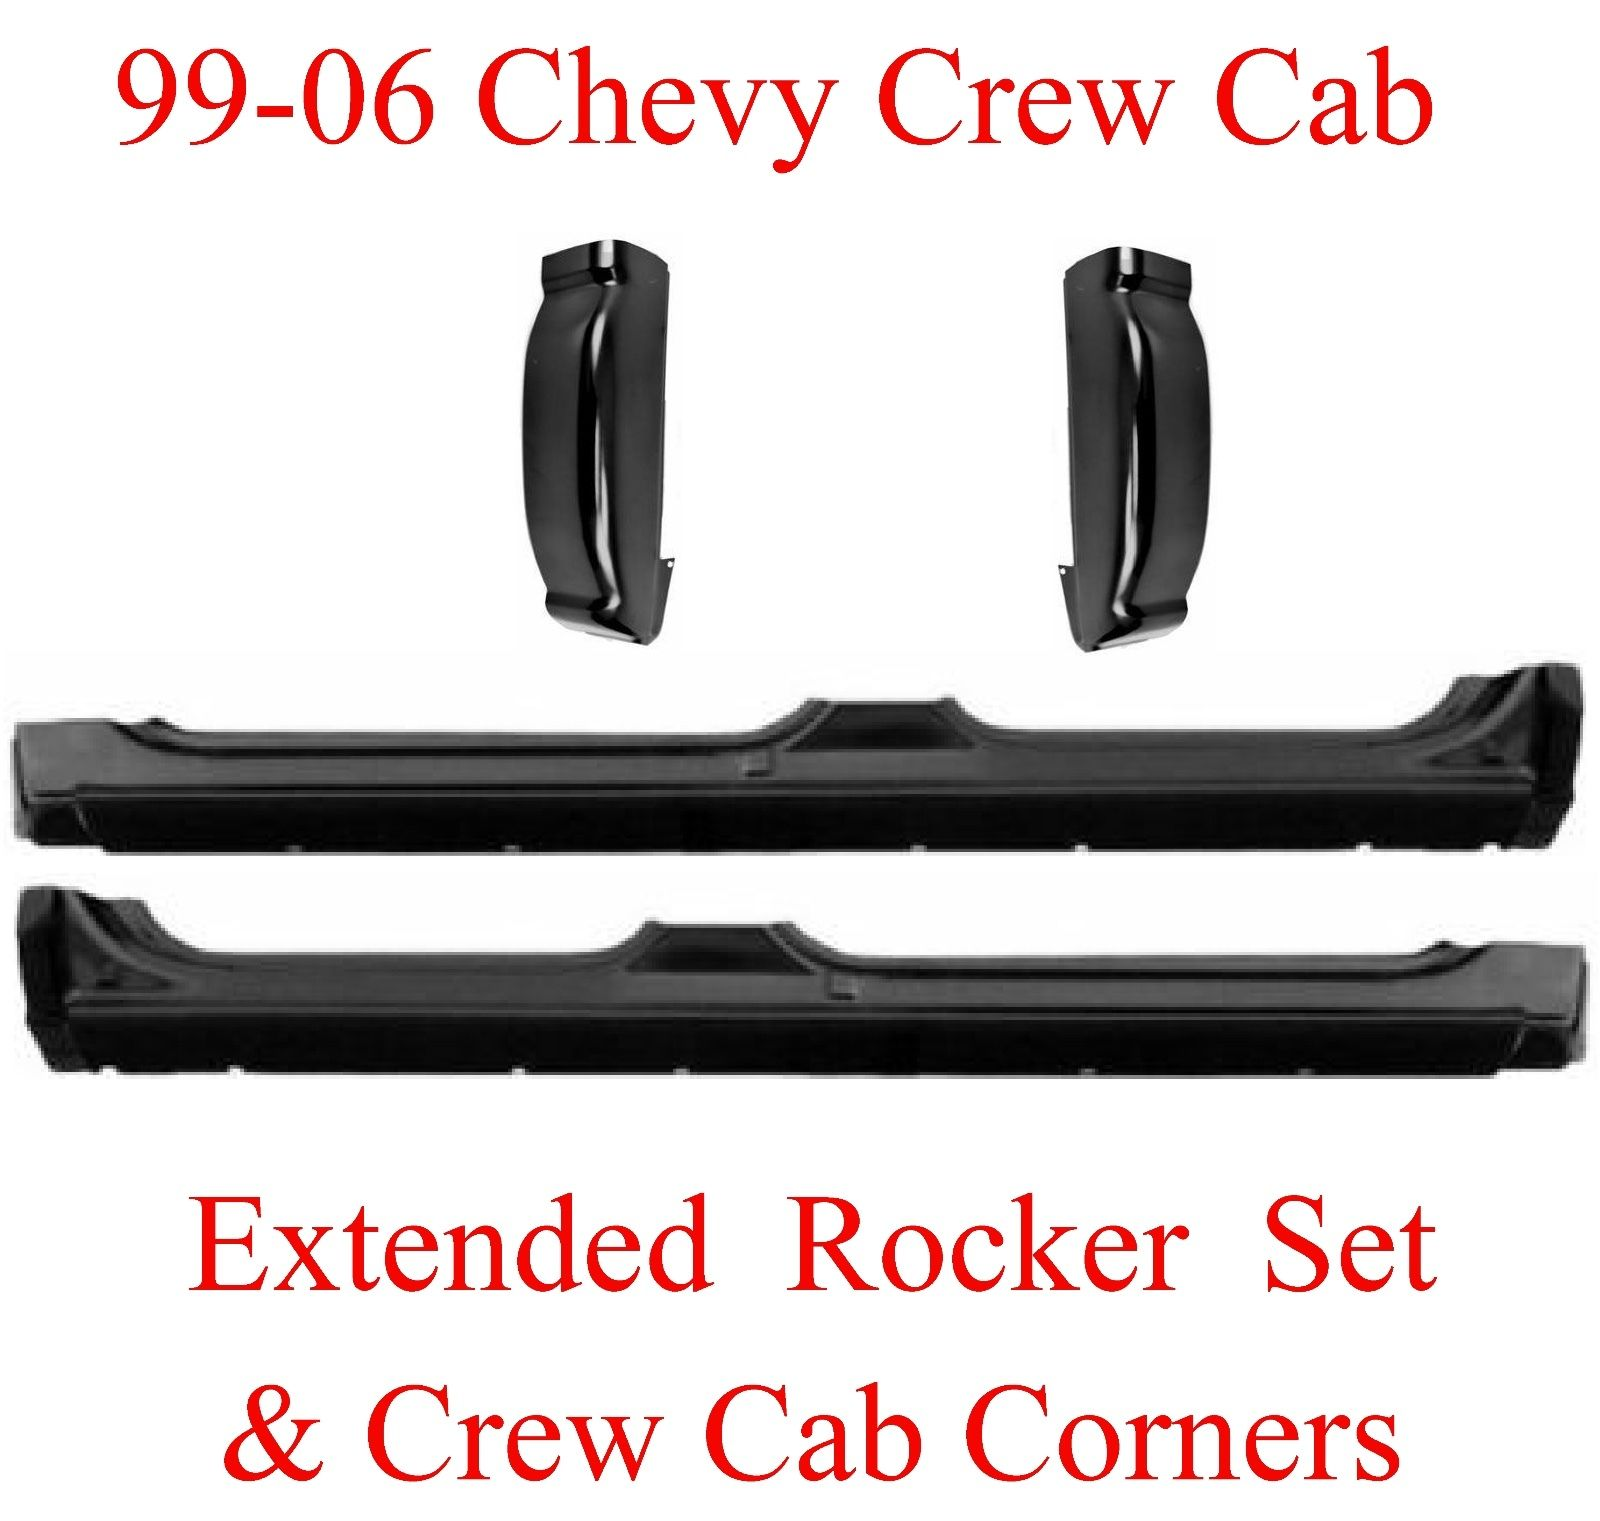 99-06 Chevy Crew Cab 4Pc Extended Rocker & Cab Corner Kit